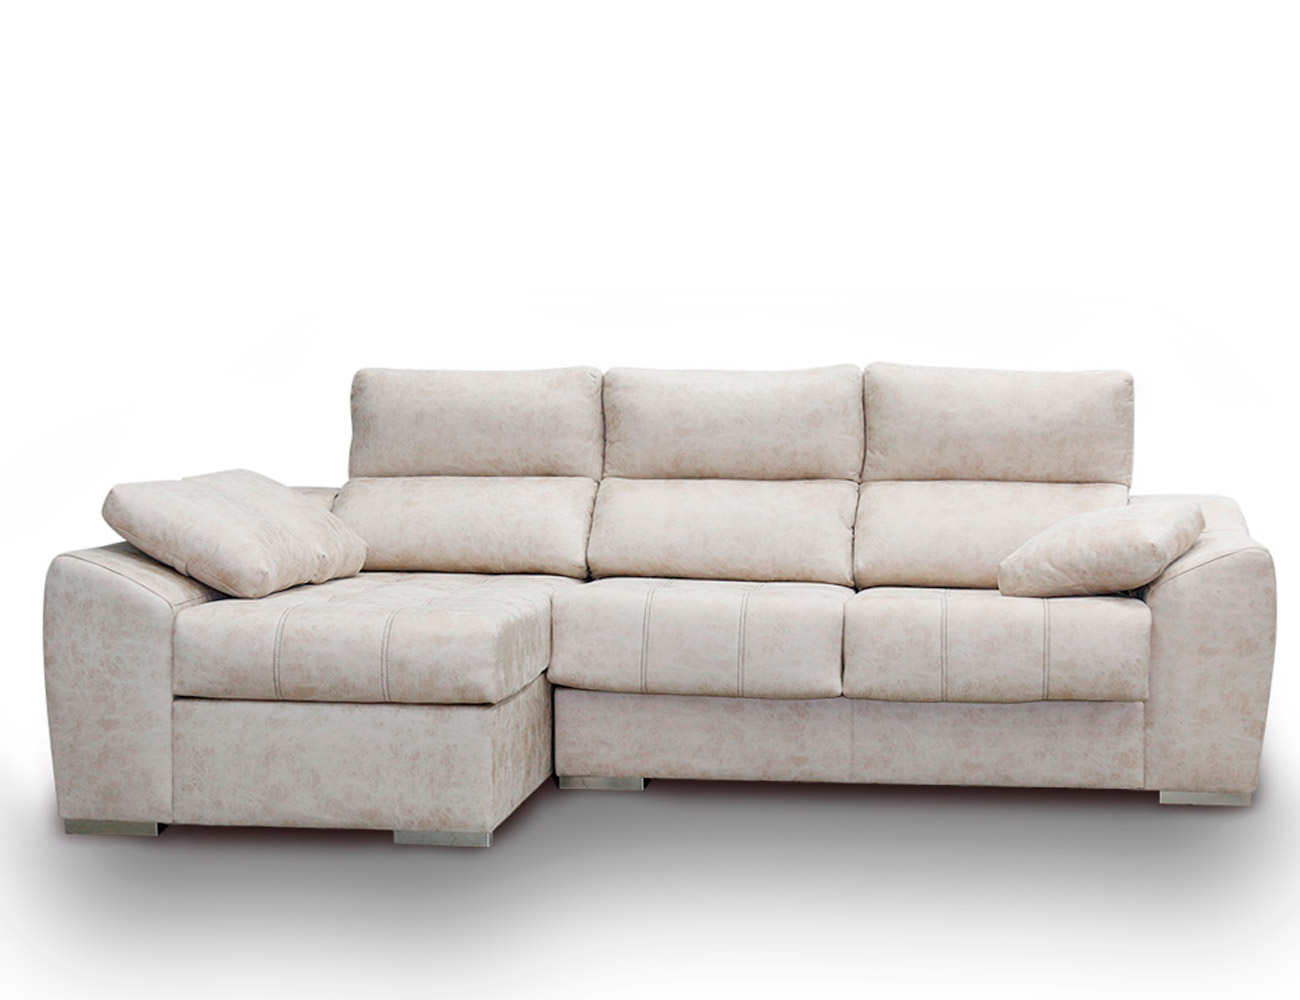 Sofa chaiselongue anti manchas beig blanco12